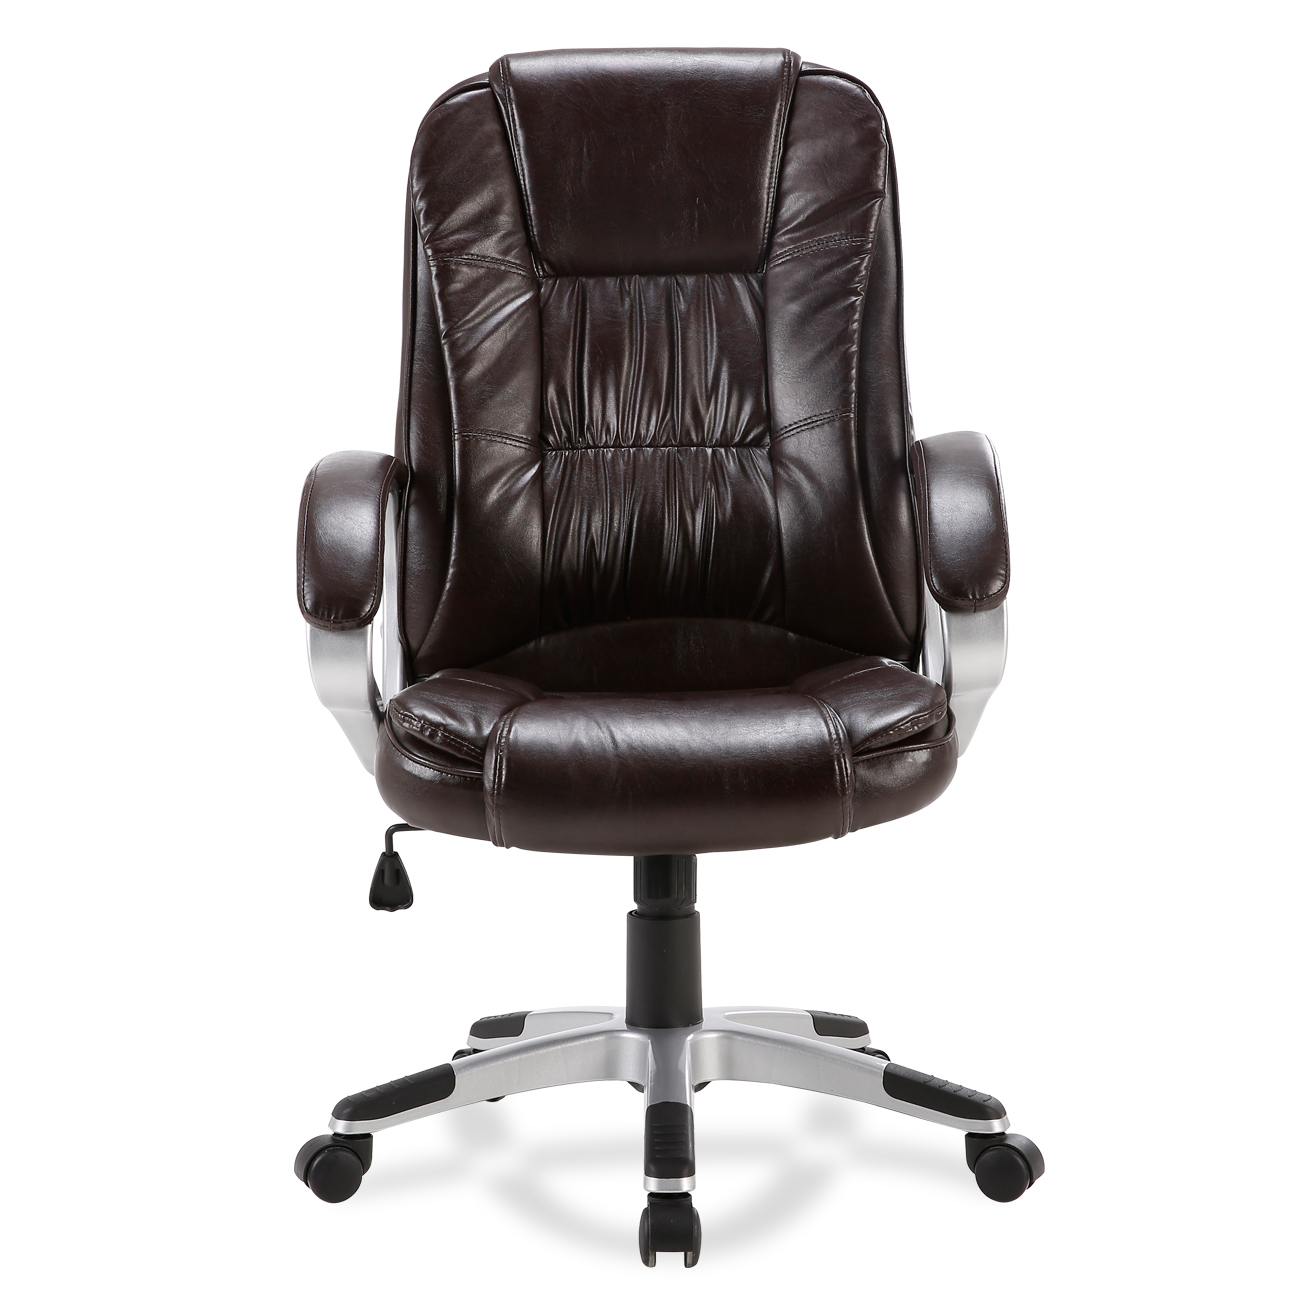 modern black leather desk chair paris cafe chairs sydney brown white pu executive computer